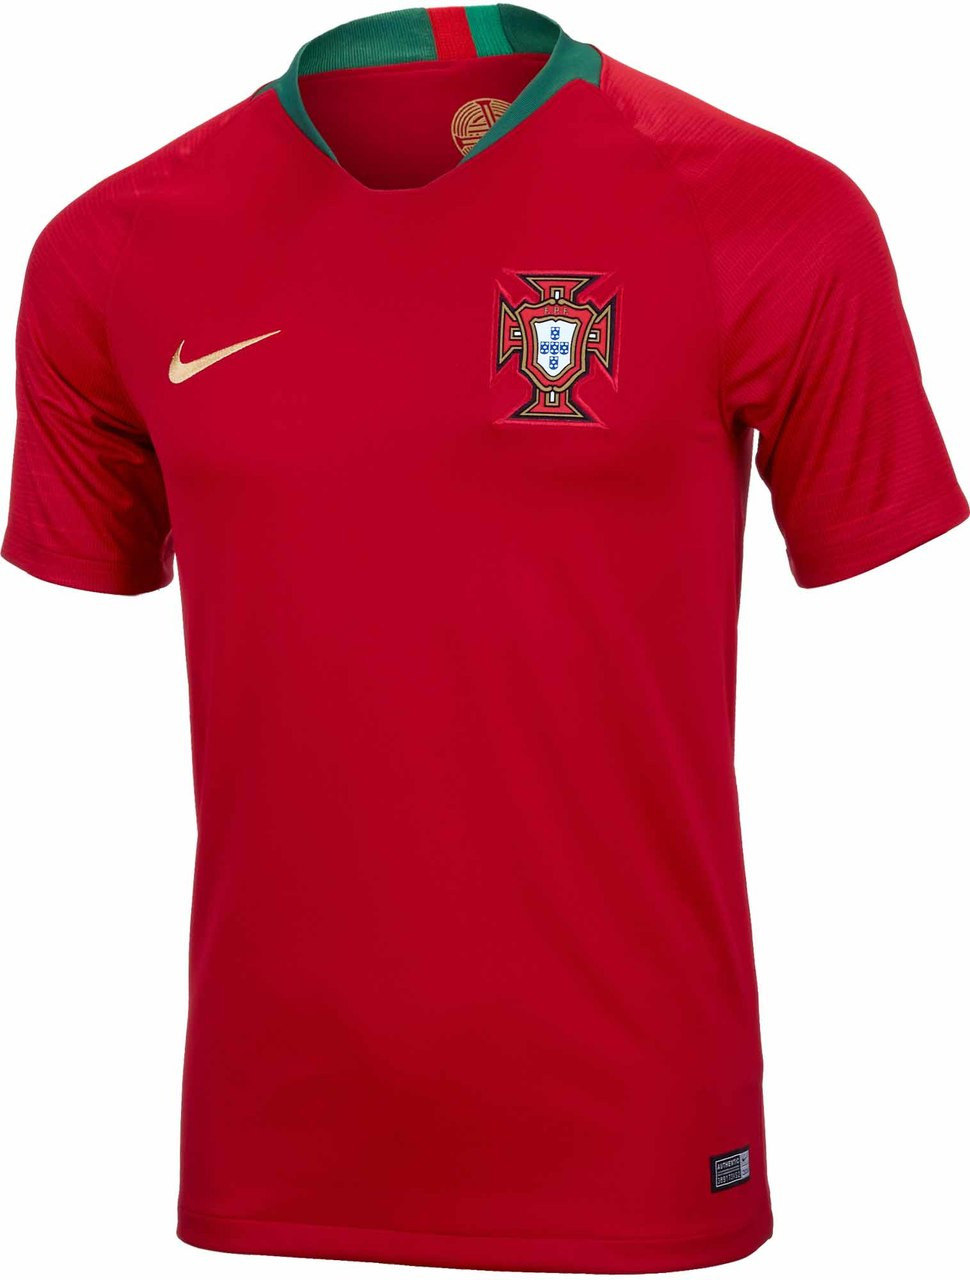 740b8c822 NIKE PORTUGAL 2018 HOME JERSEY - Soccer Plus